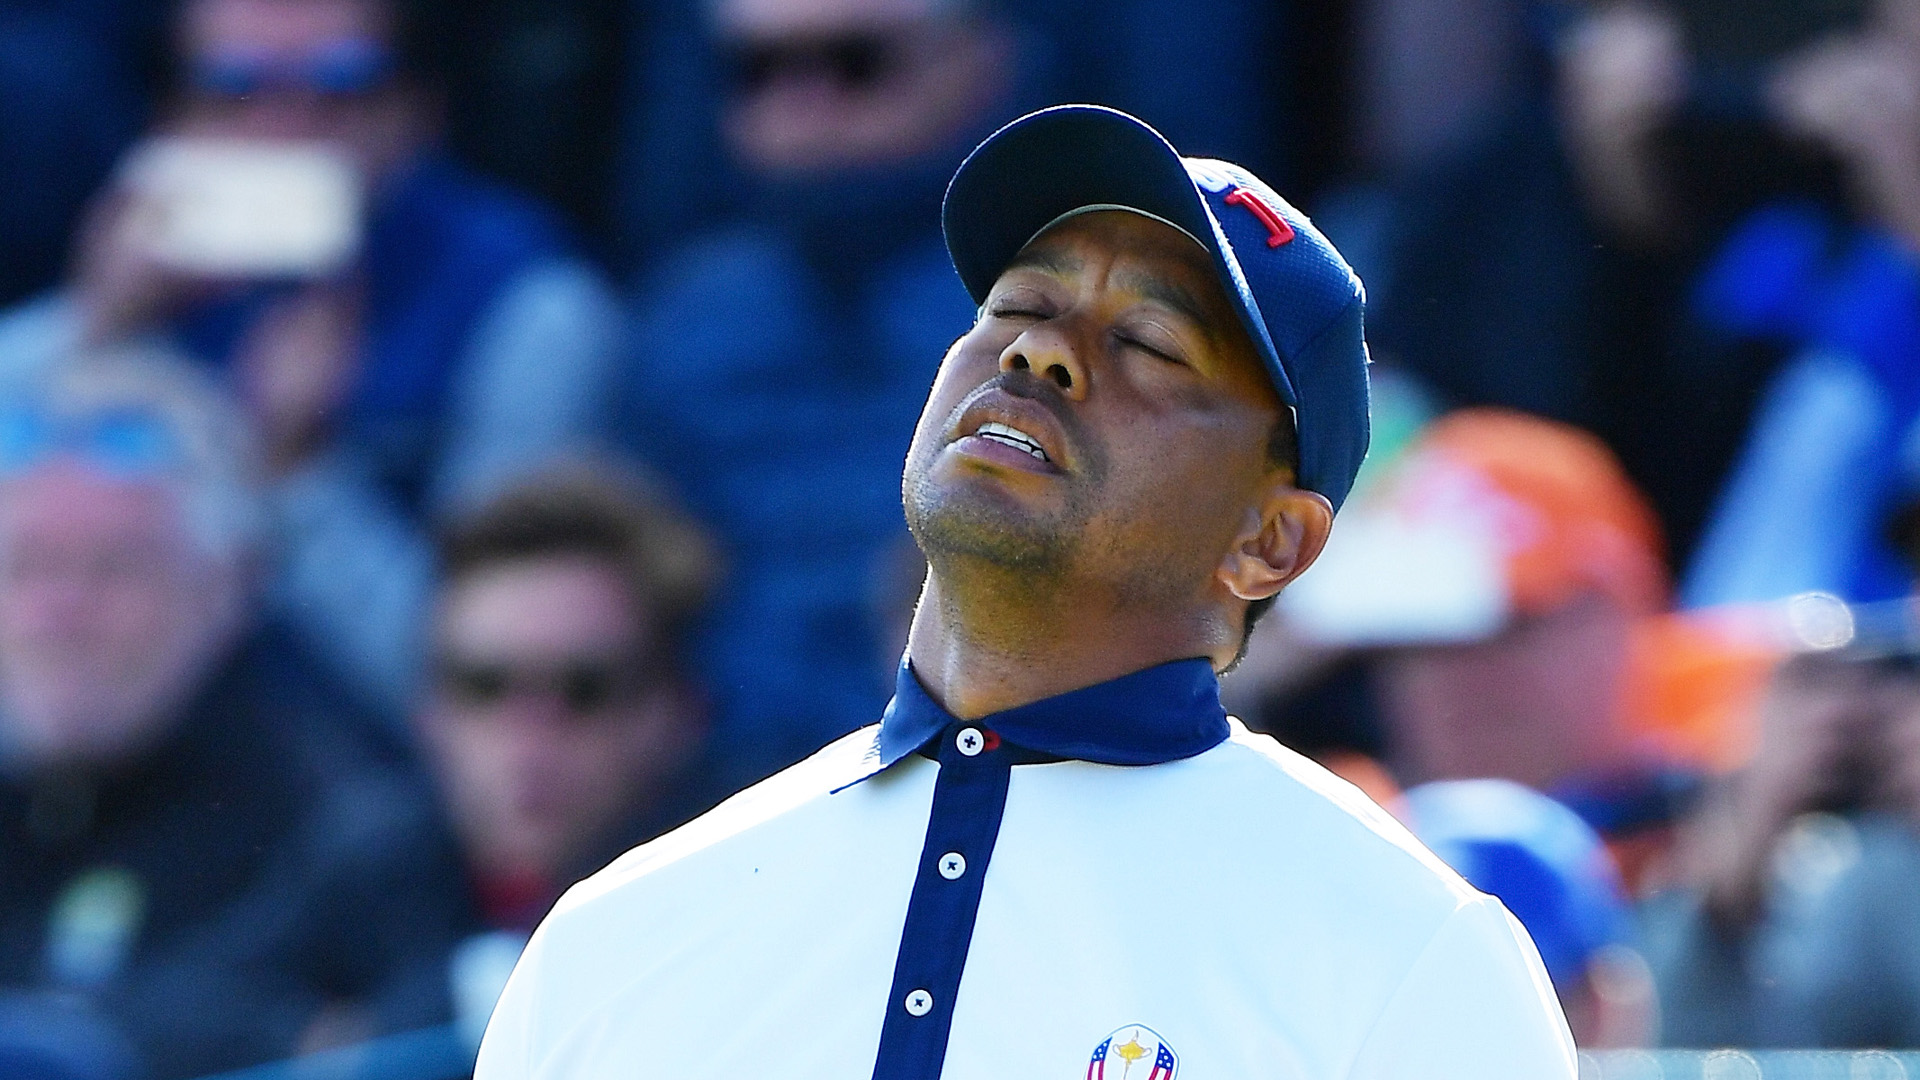 Not only has Tiger Woods yet to win a match at Le Golf National, he is yet to play an 18th hole having gone 0-3, and he is frustrated.